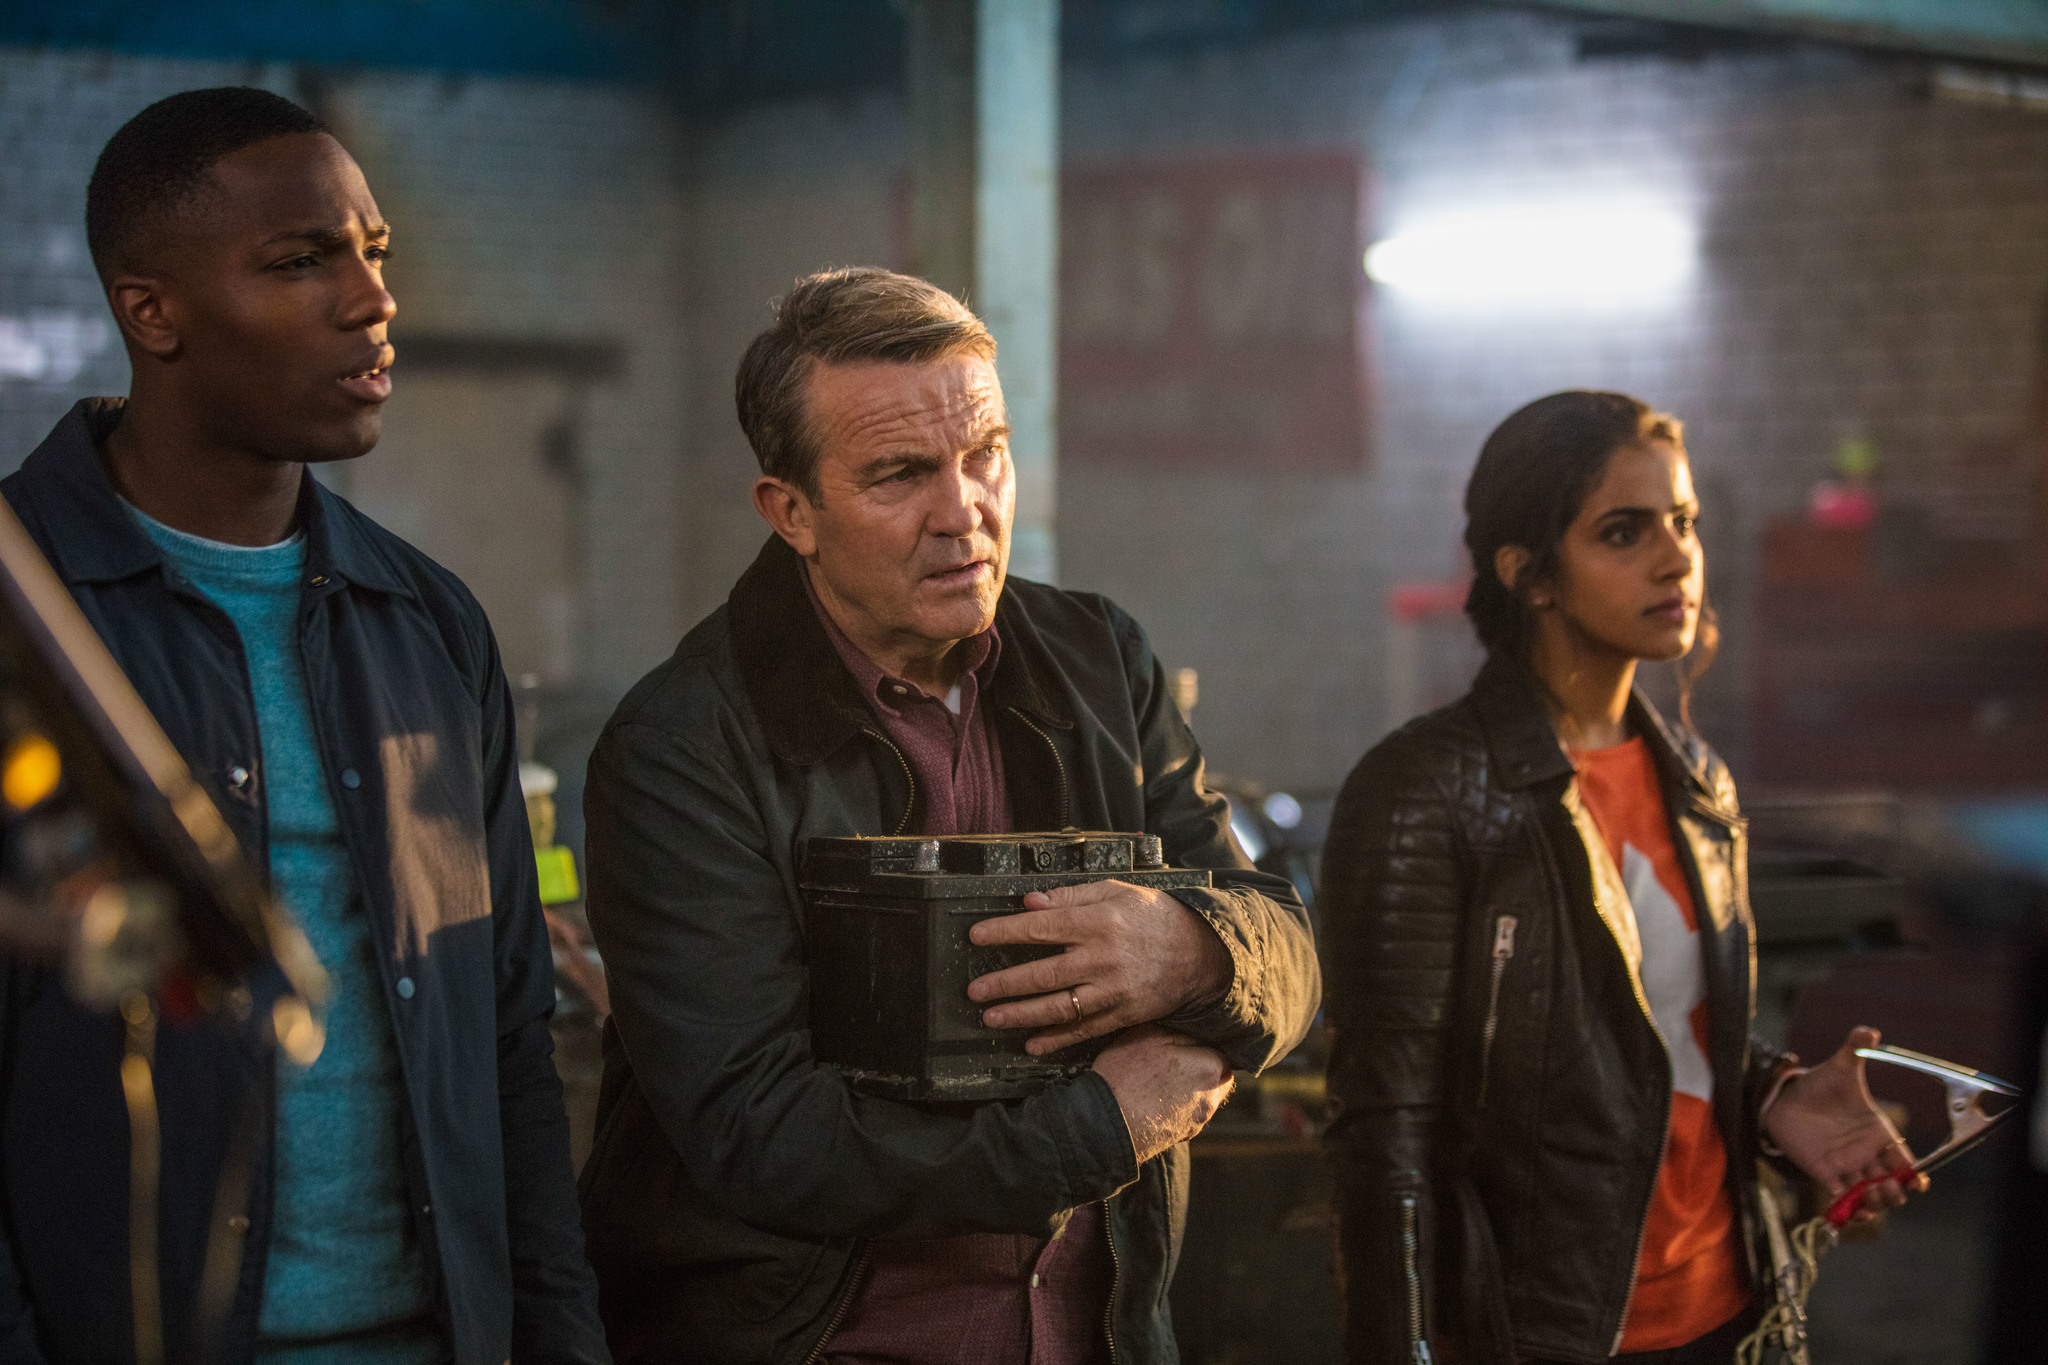 Bradley Walsh, Tosin Cole, and Mandip Gill in Doctor Who (2005)